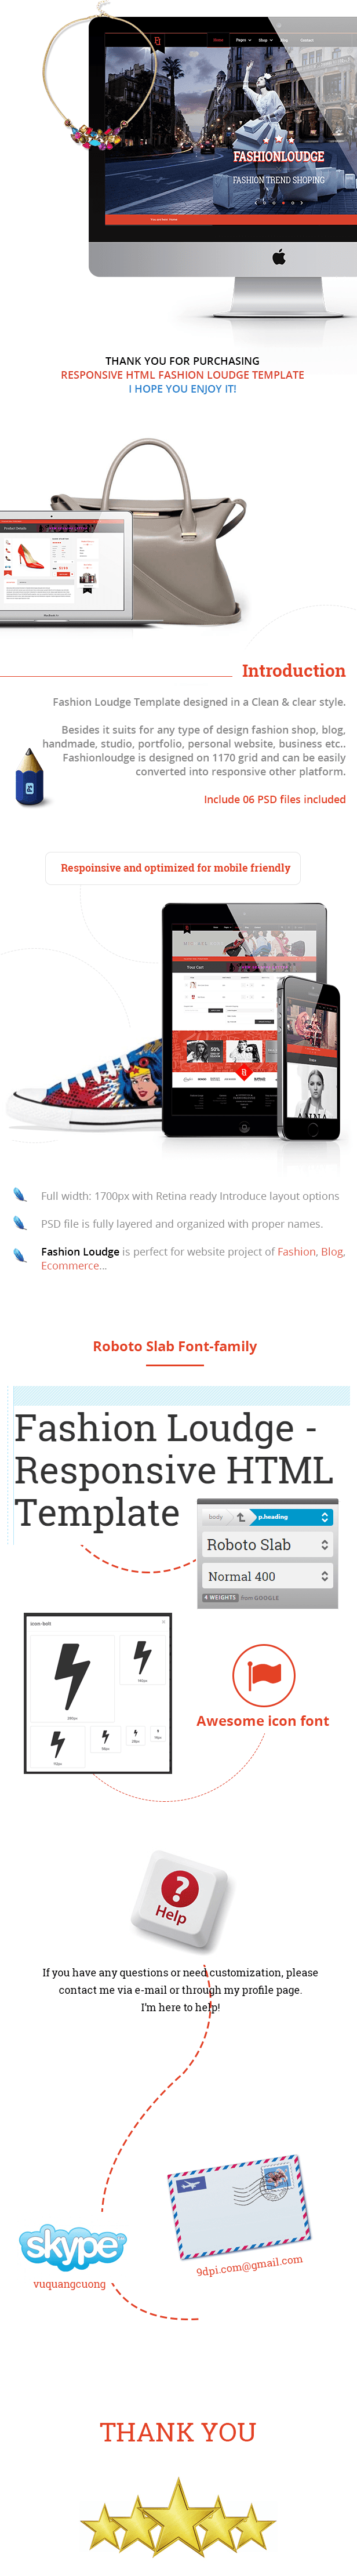 Fashion Loudge - Responsive HTML Template